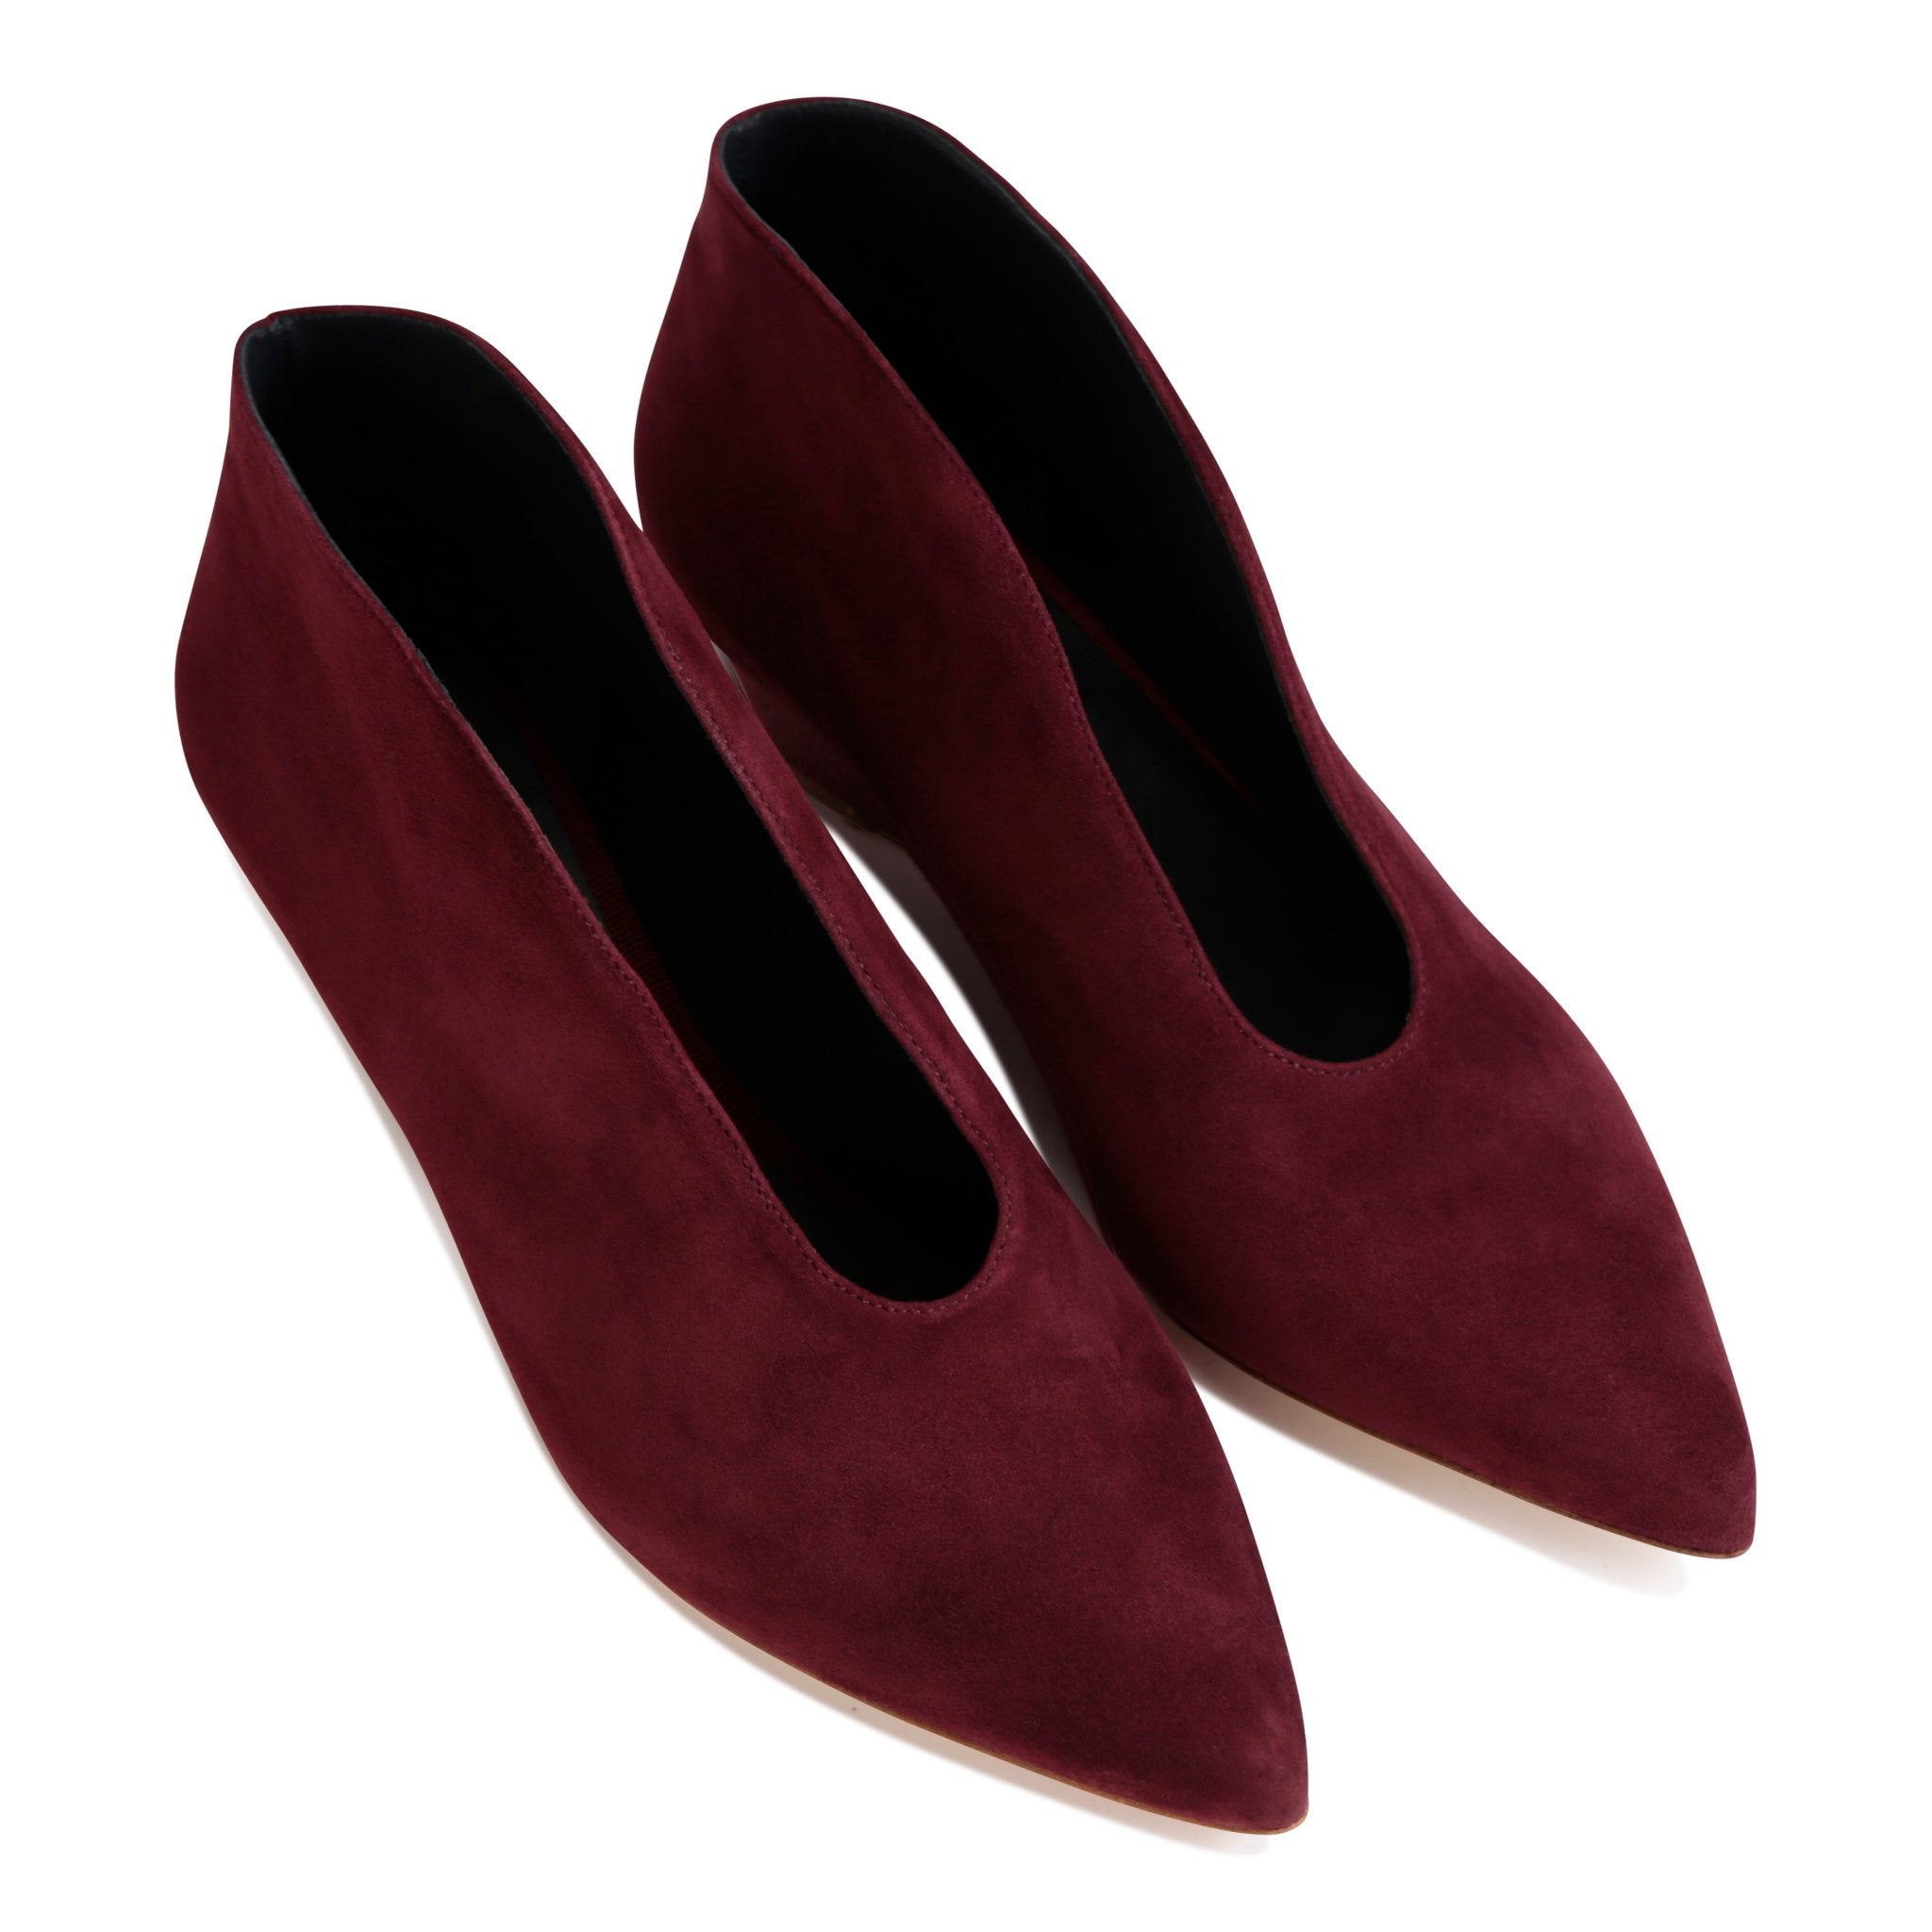 URBINO - Velukid + Karung Garnet, VIAJIYU - Women's Hand Made Sustainable Luxury Shoes. Made in Italy. Made to Order.